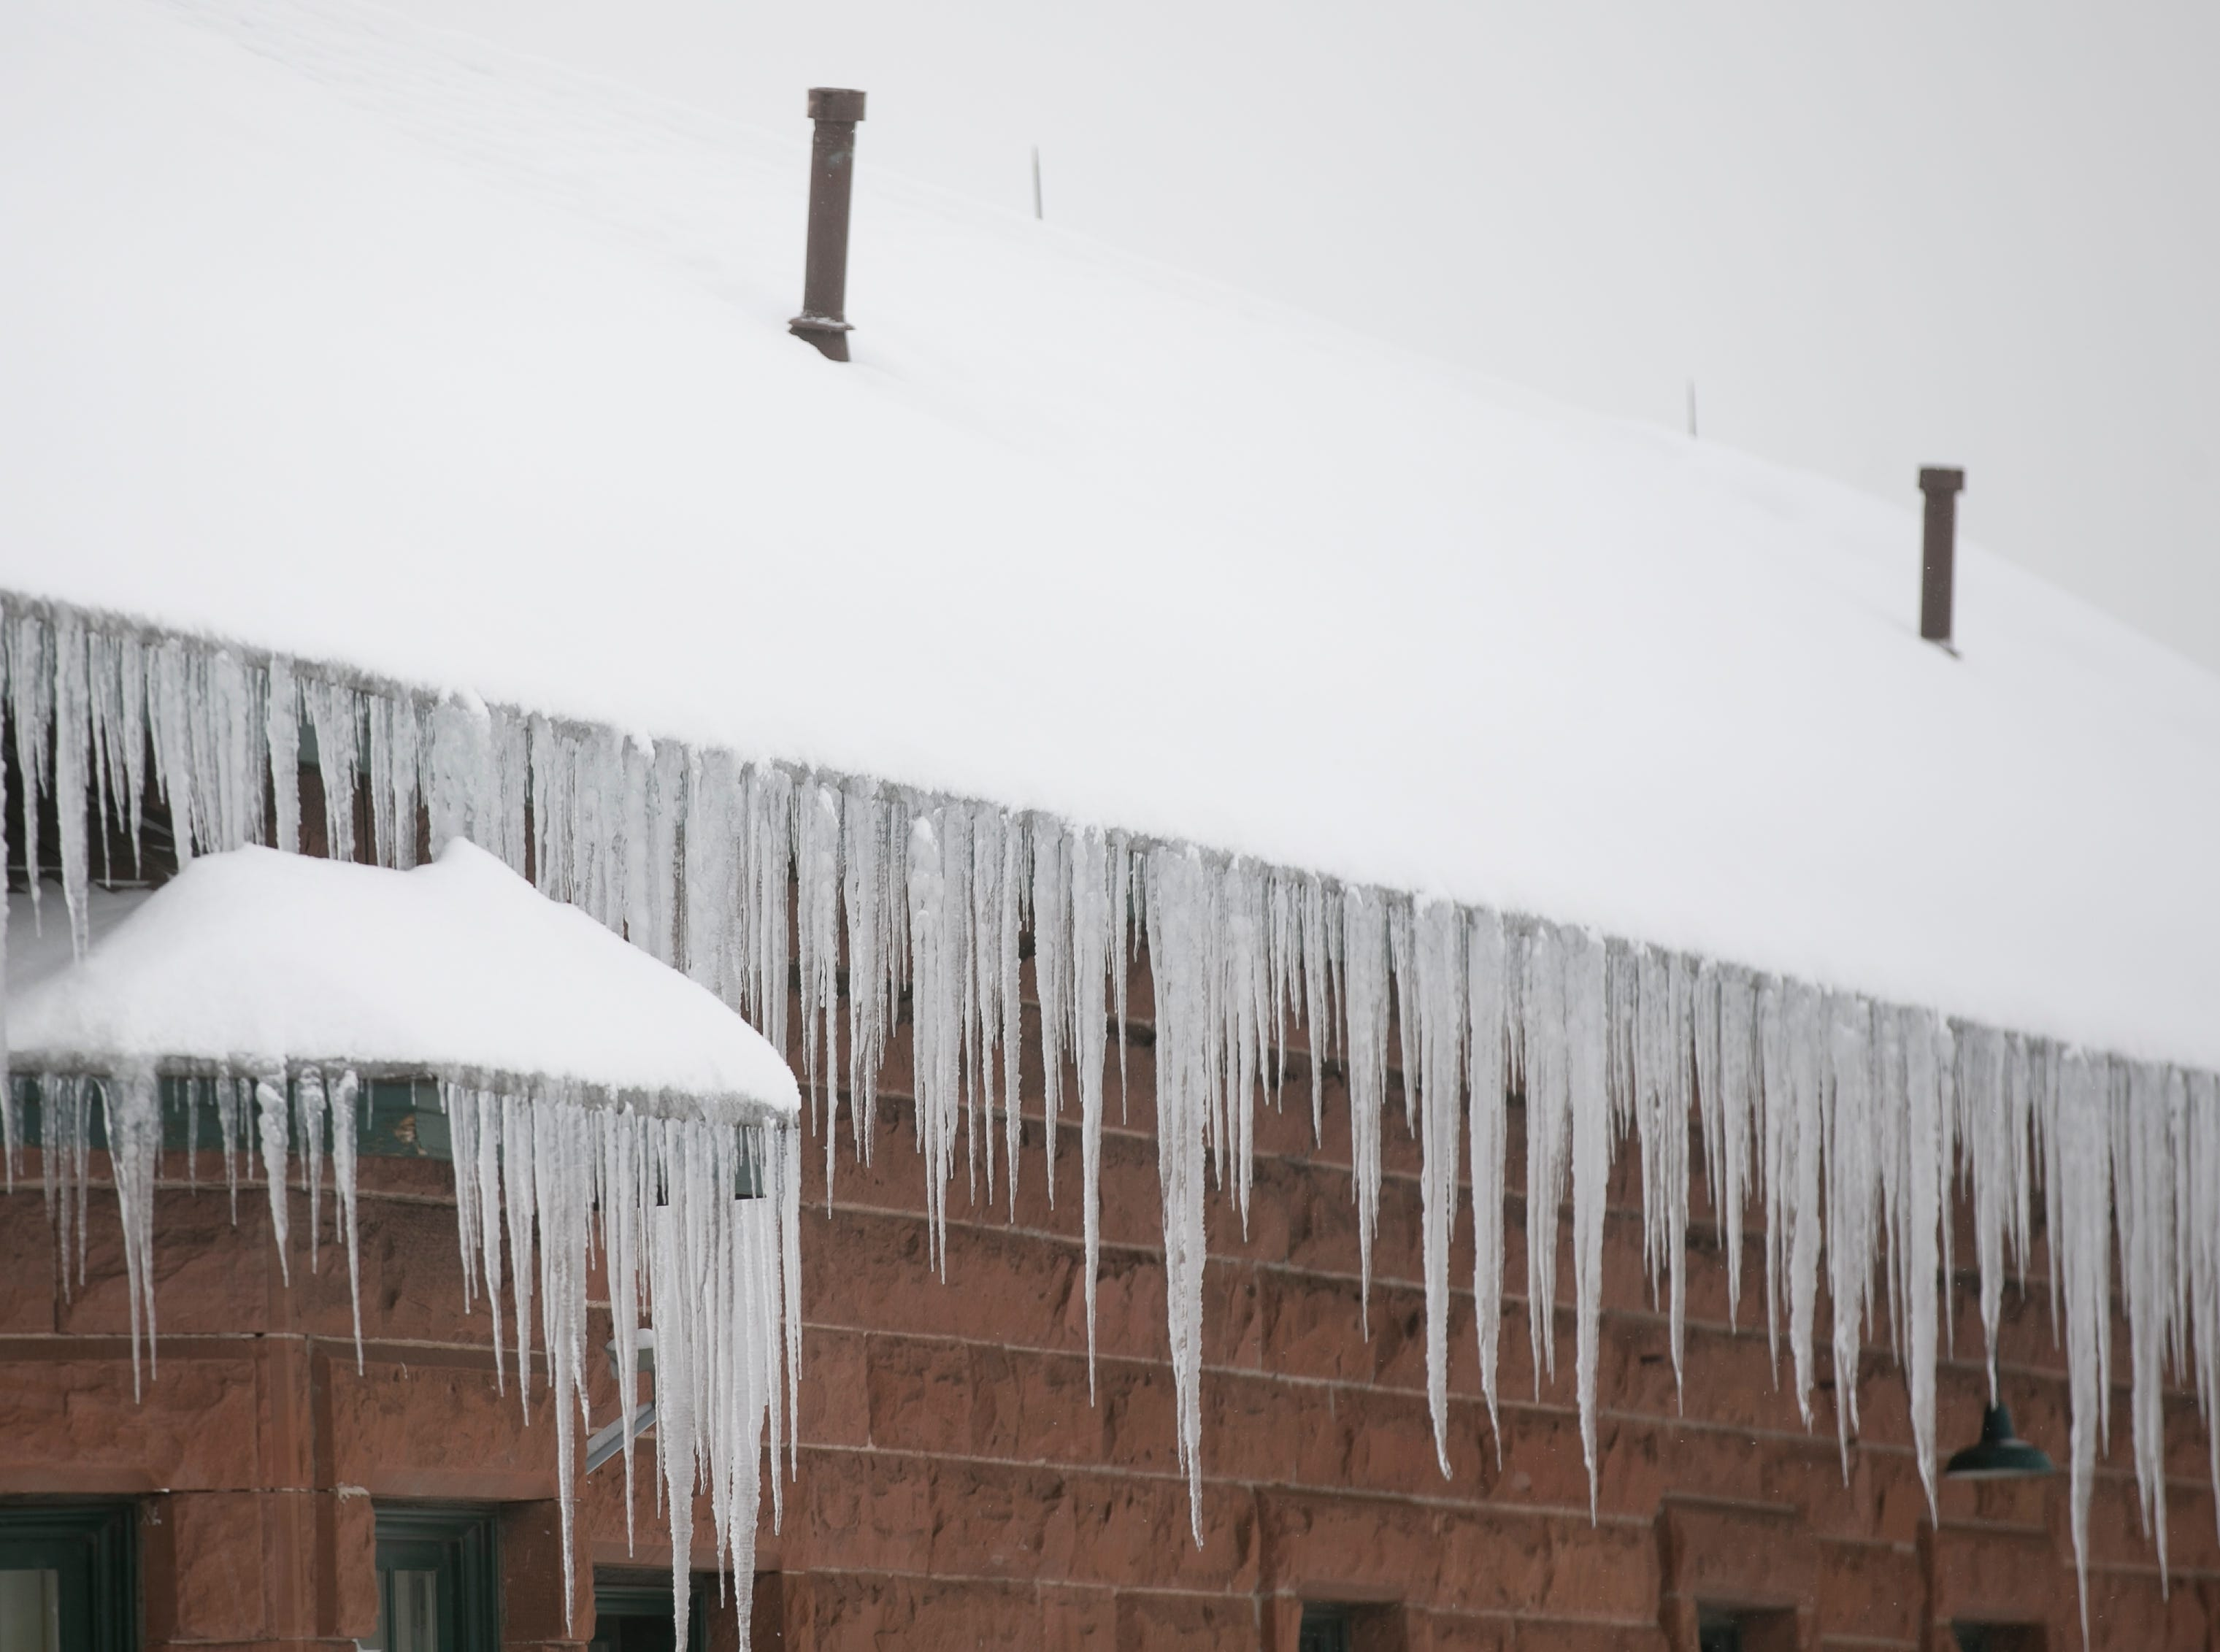 Icicles hang from a building the morning after a snowstorm in Flagstaff on Feb. 22, 2019. The day before, a snow storm set the record for the most amount of snowfall in a day in Flagstaff.